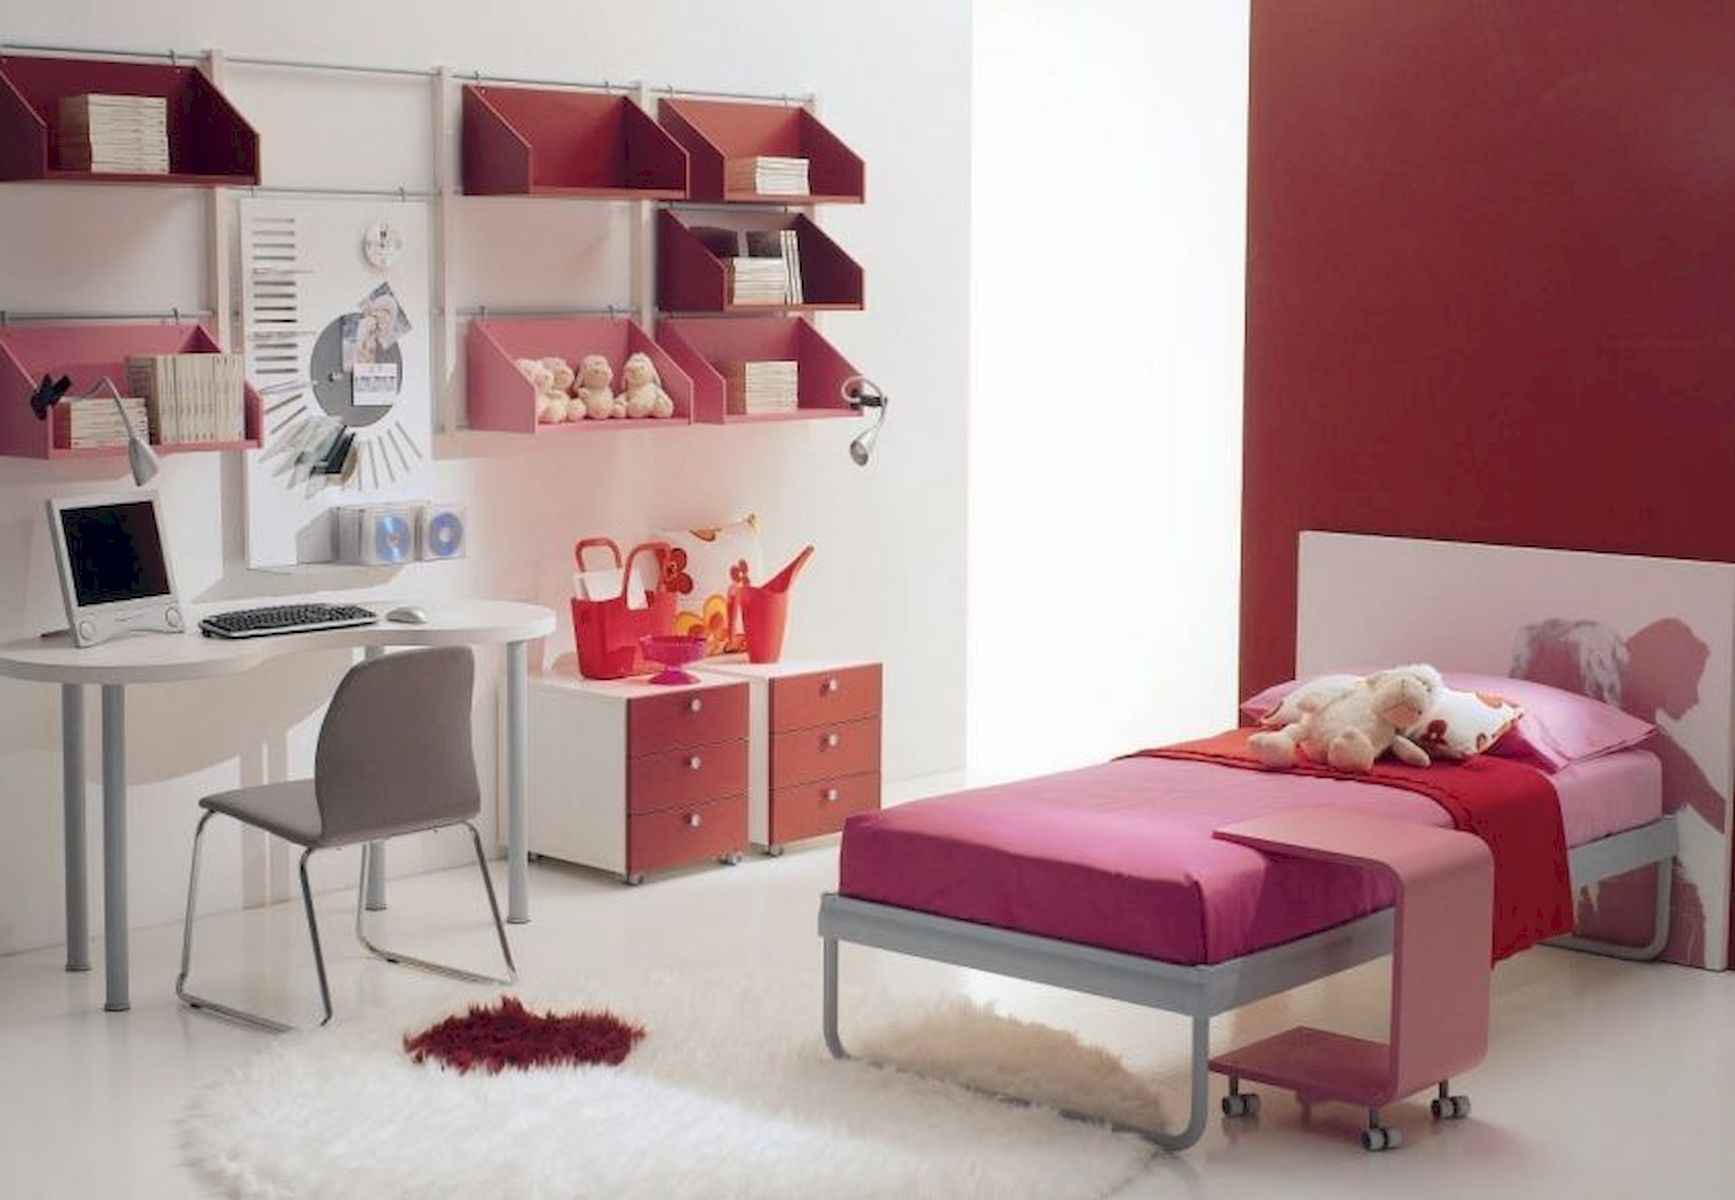 60 Gorgeous College Dorm Room Decorating Ideas And Makeover (11)